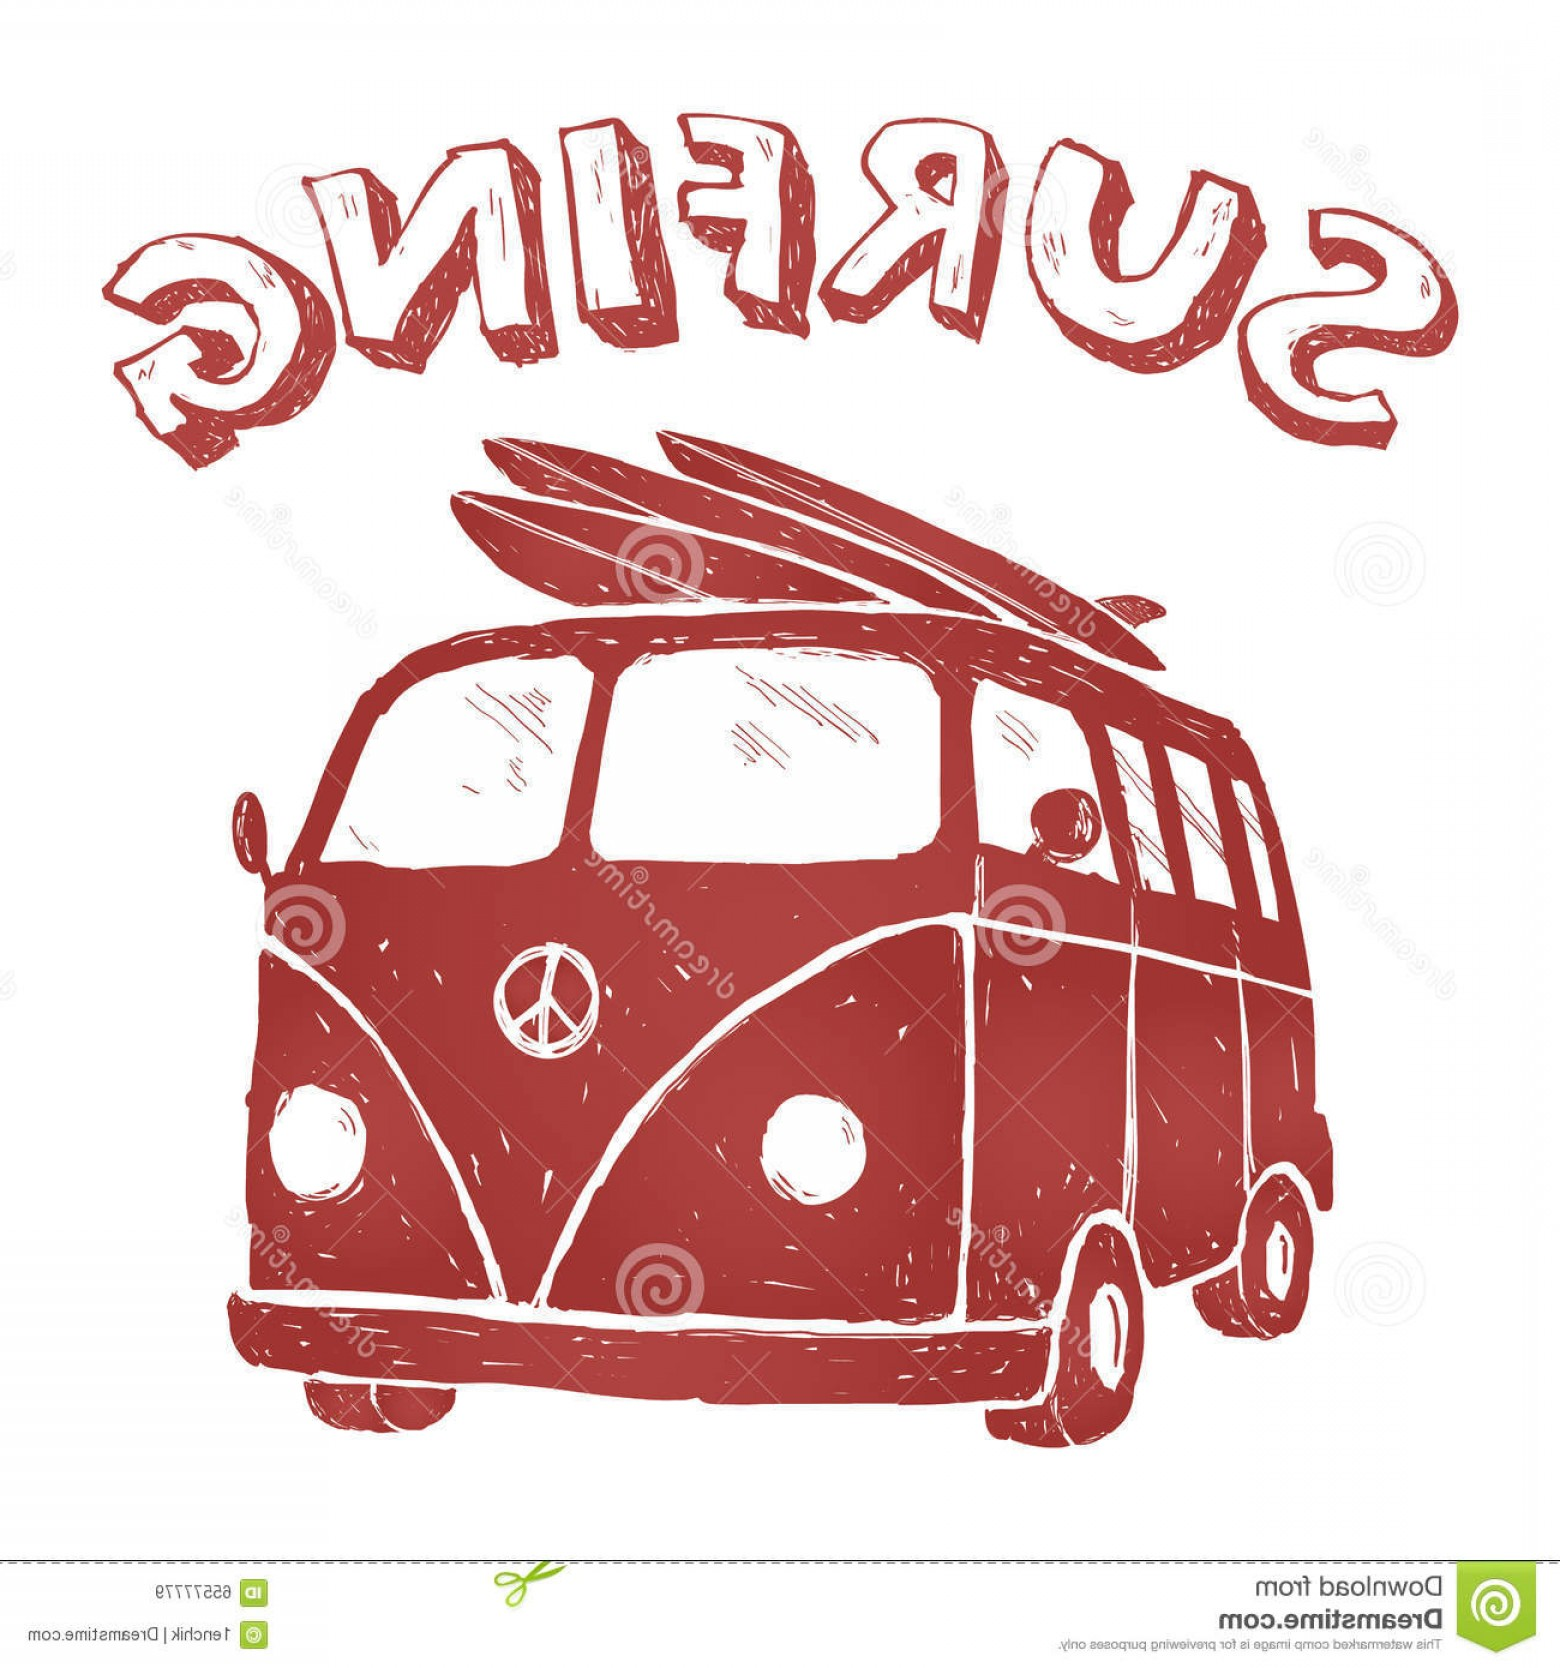 California Lifestyle Vector: Stock Illustration Surf Van Illustration T Shirt Graphics Vectors Typography Red Car Image